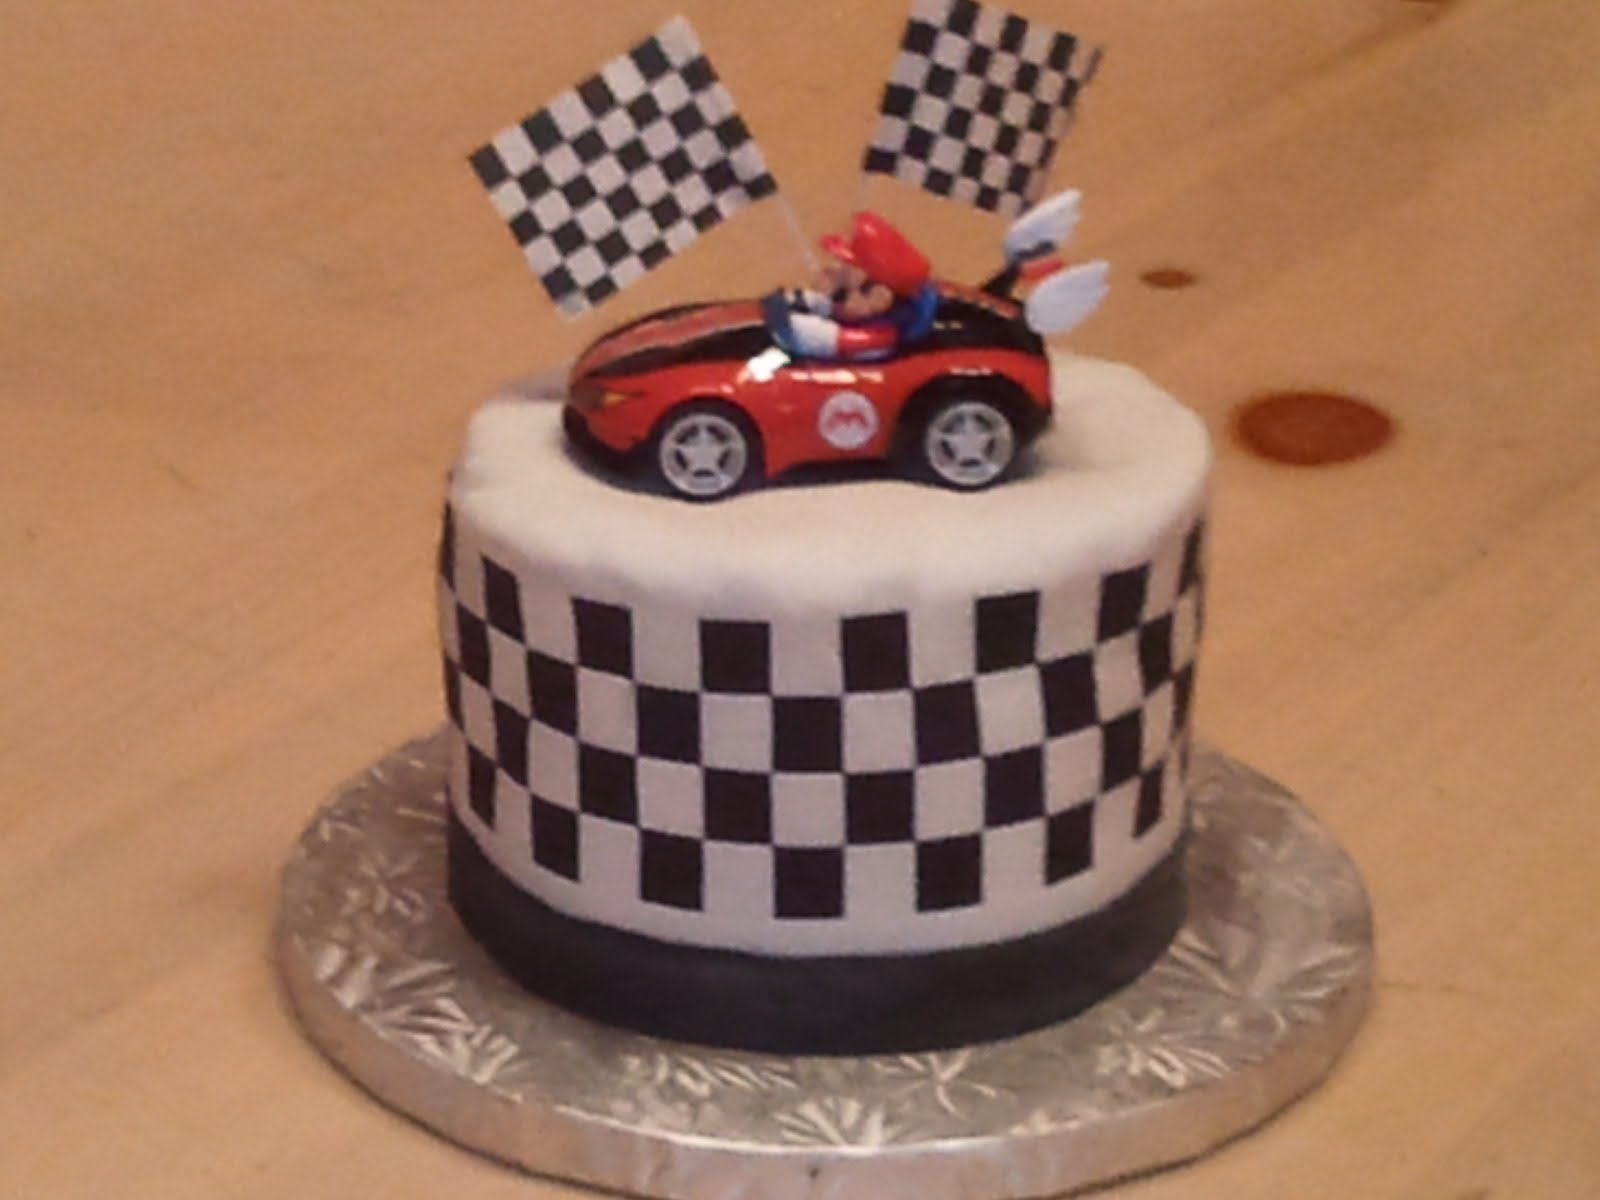 A Touch of Class Cakes Wii Mario Kart cake DecorateYourOwn cake